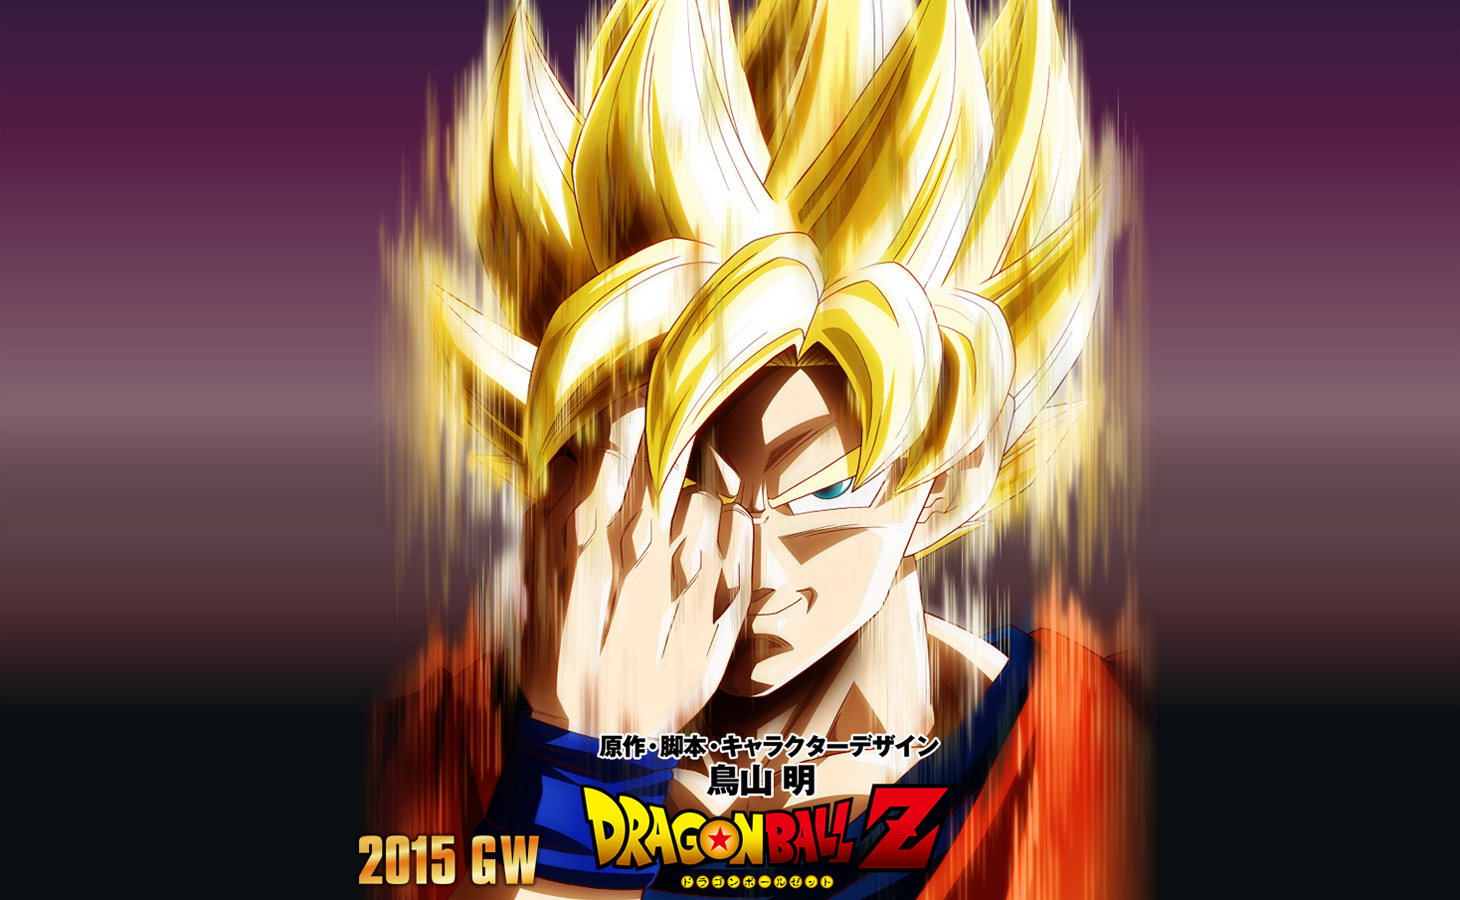 Neuer Dragon Ball Film 2015